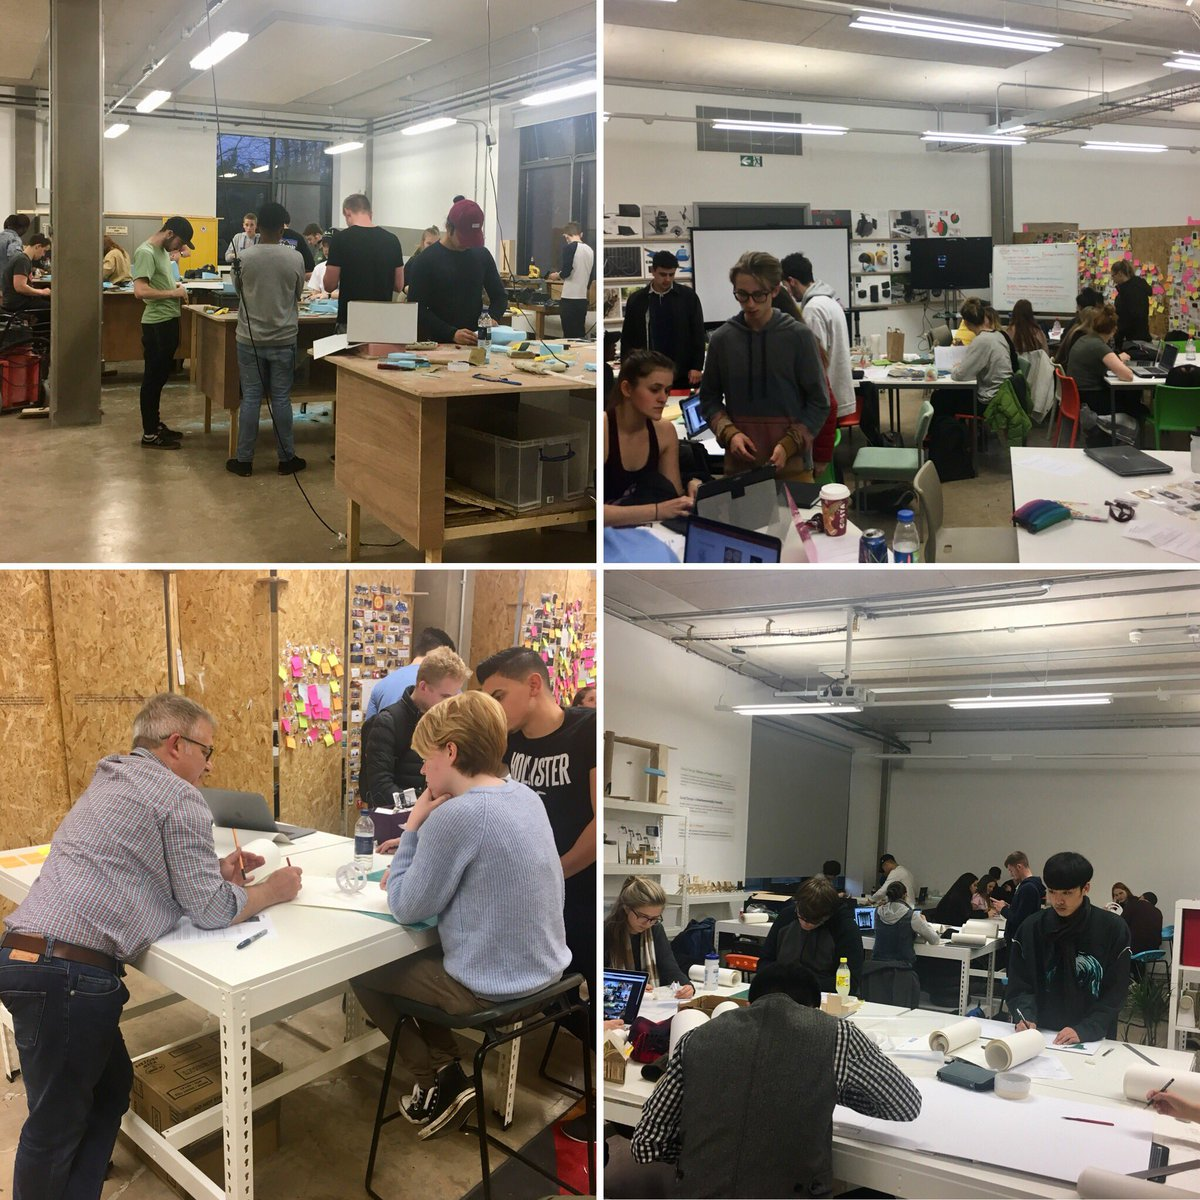 Gr8 2 have the department busy with students from across CSAD activley engaged in transdisiplinary projects #productdesign #wearecardiffmet